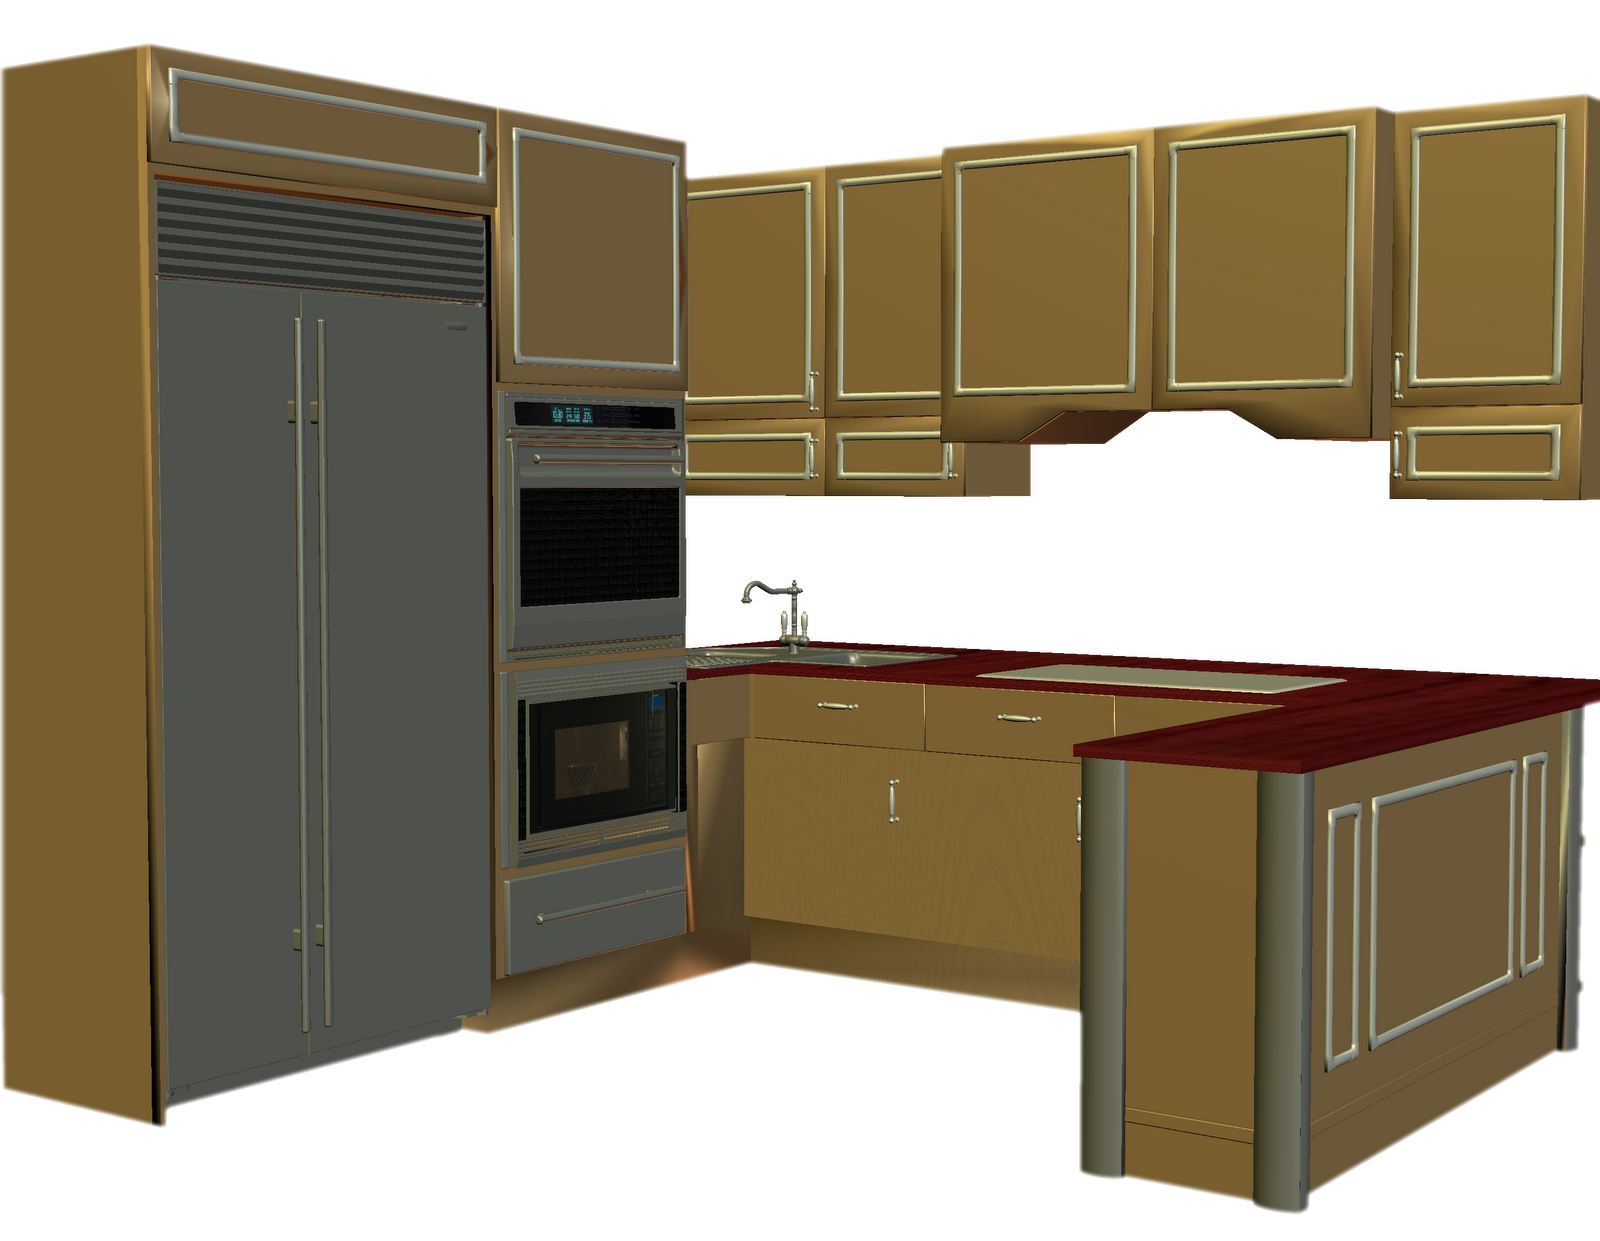 Panda free images counterclipart. Kitchen clipart kitchen counter